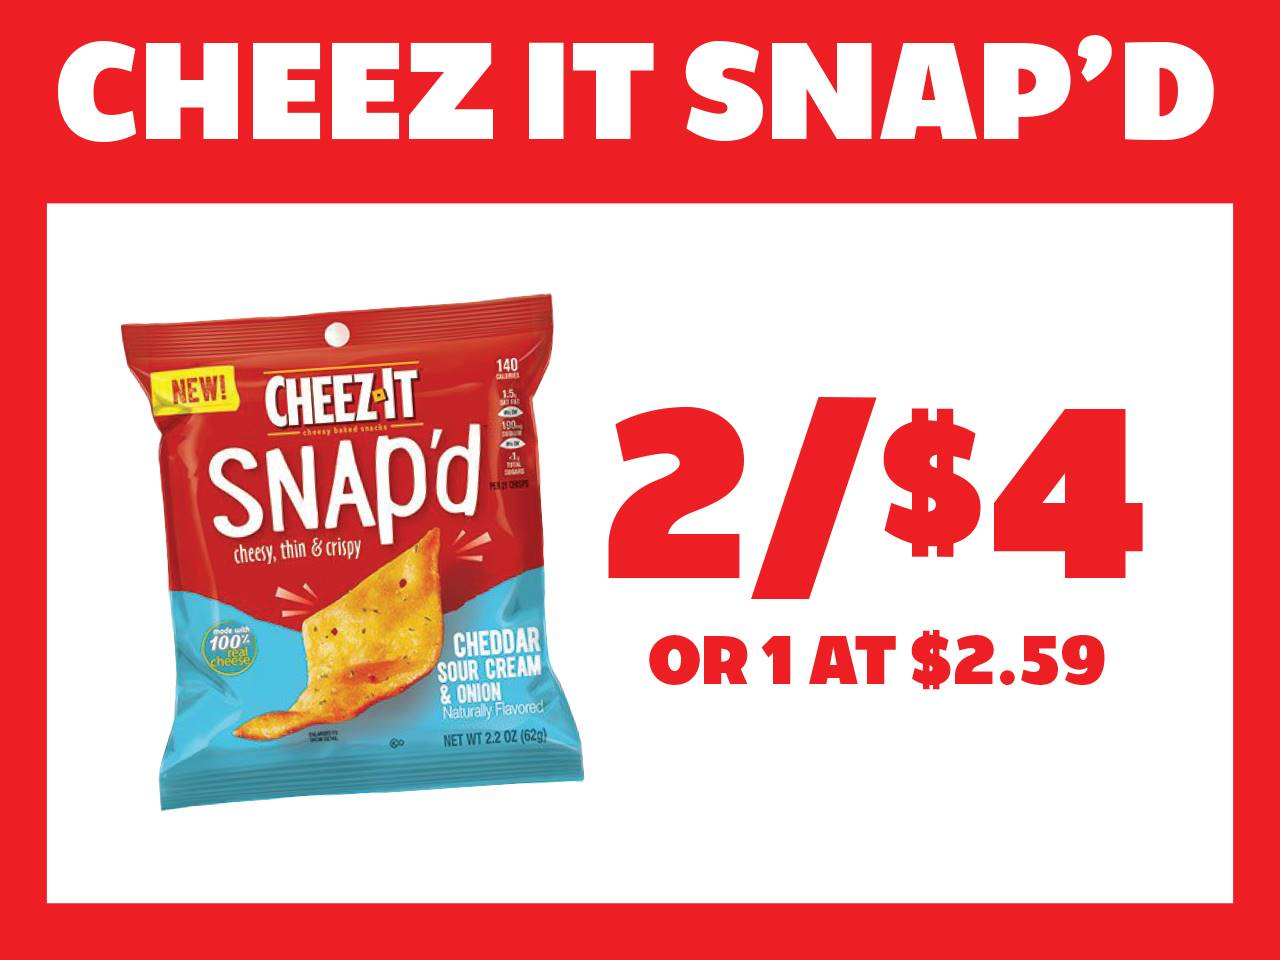 Cheez It Snap'd 2 for $4 or 1 at $2.59